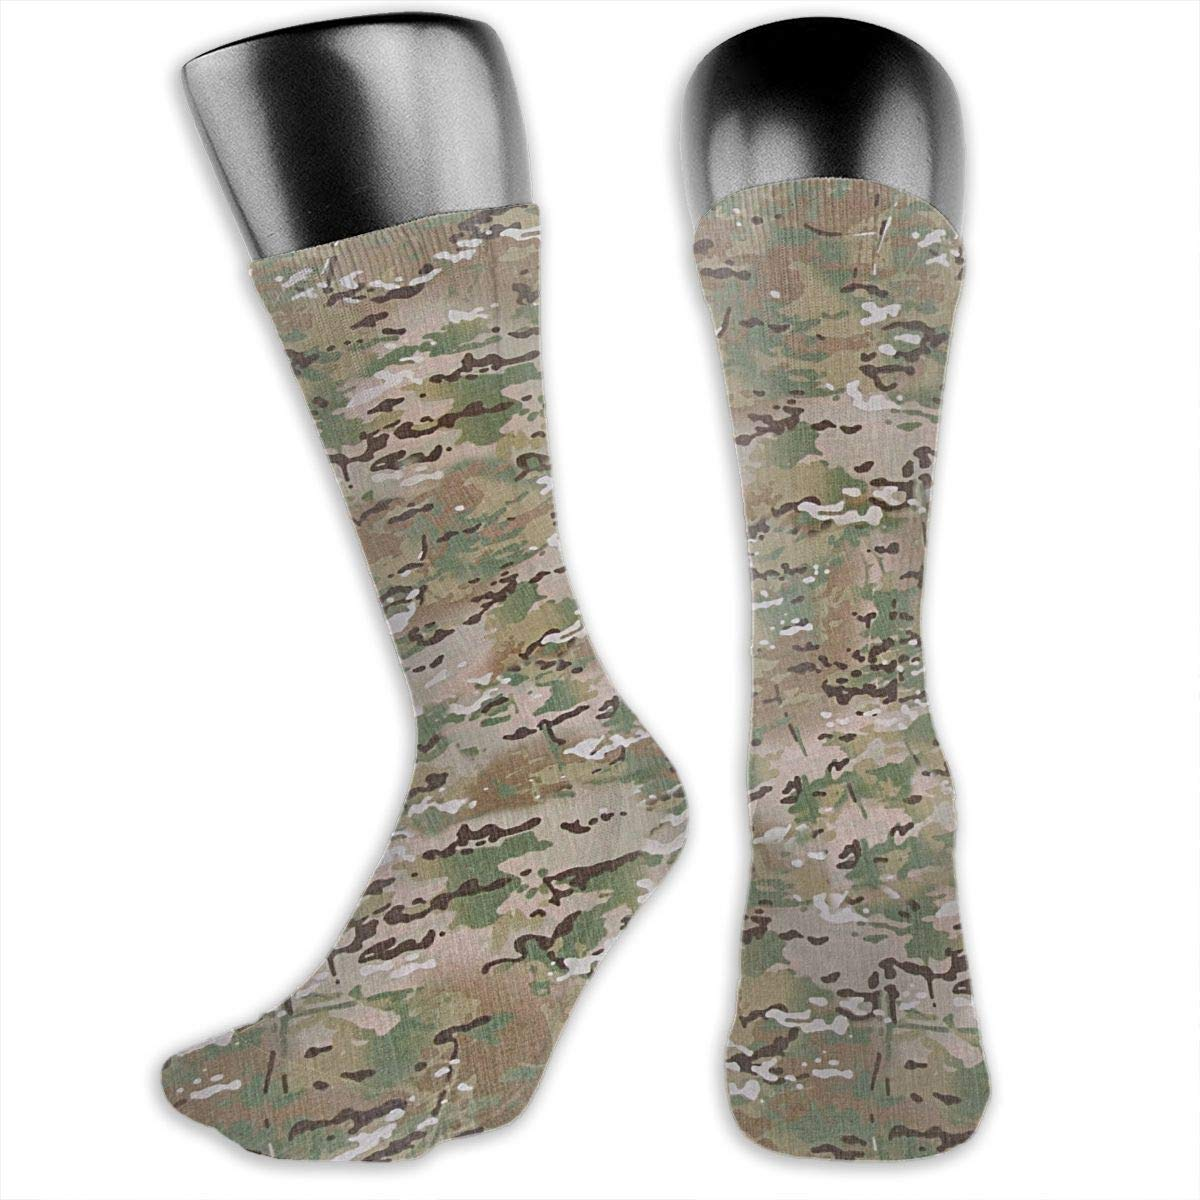 OLGCZM Camouflage Pattern Texture Men Womens Thin High Ankle Casual Socks Fit Outdoor Hiking Trail